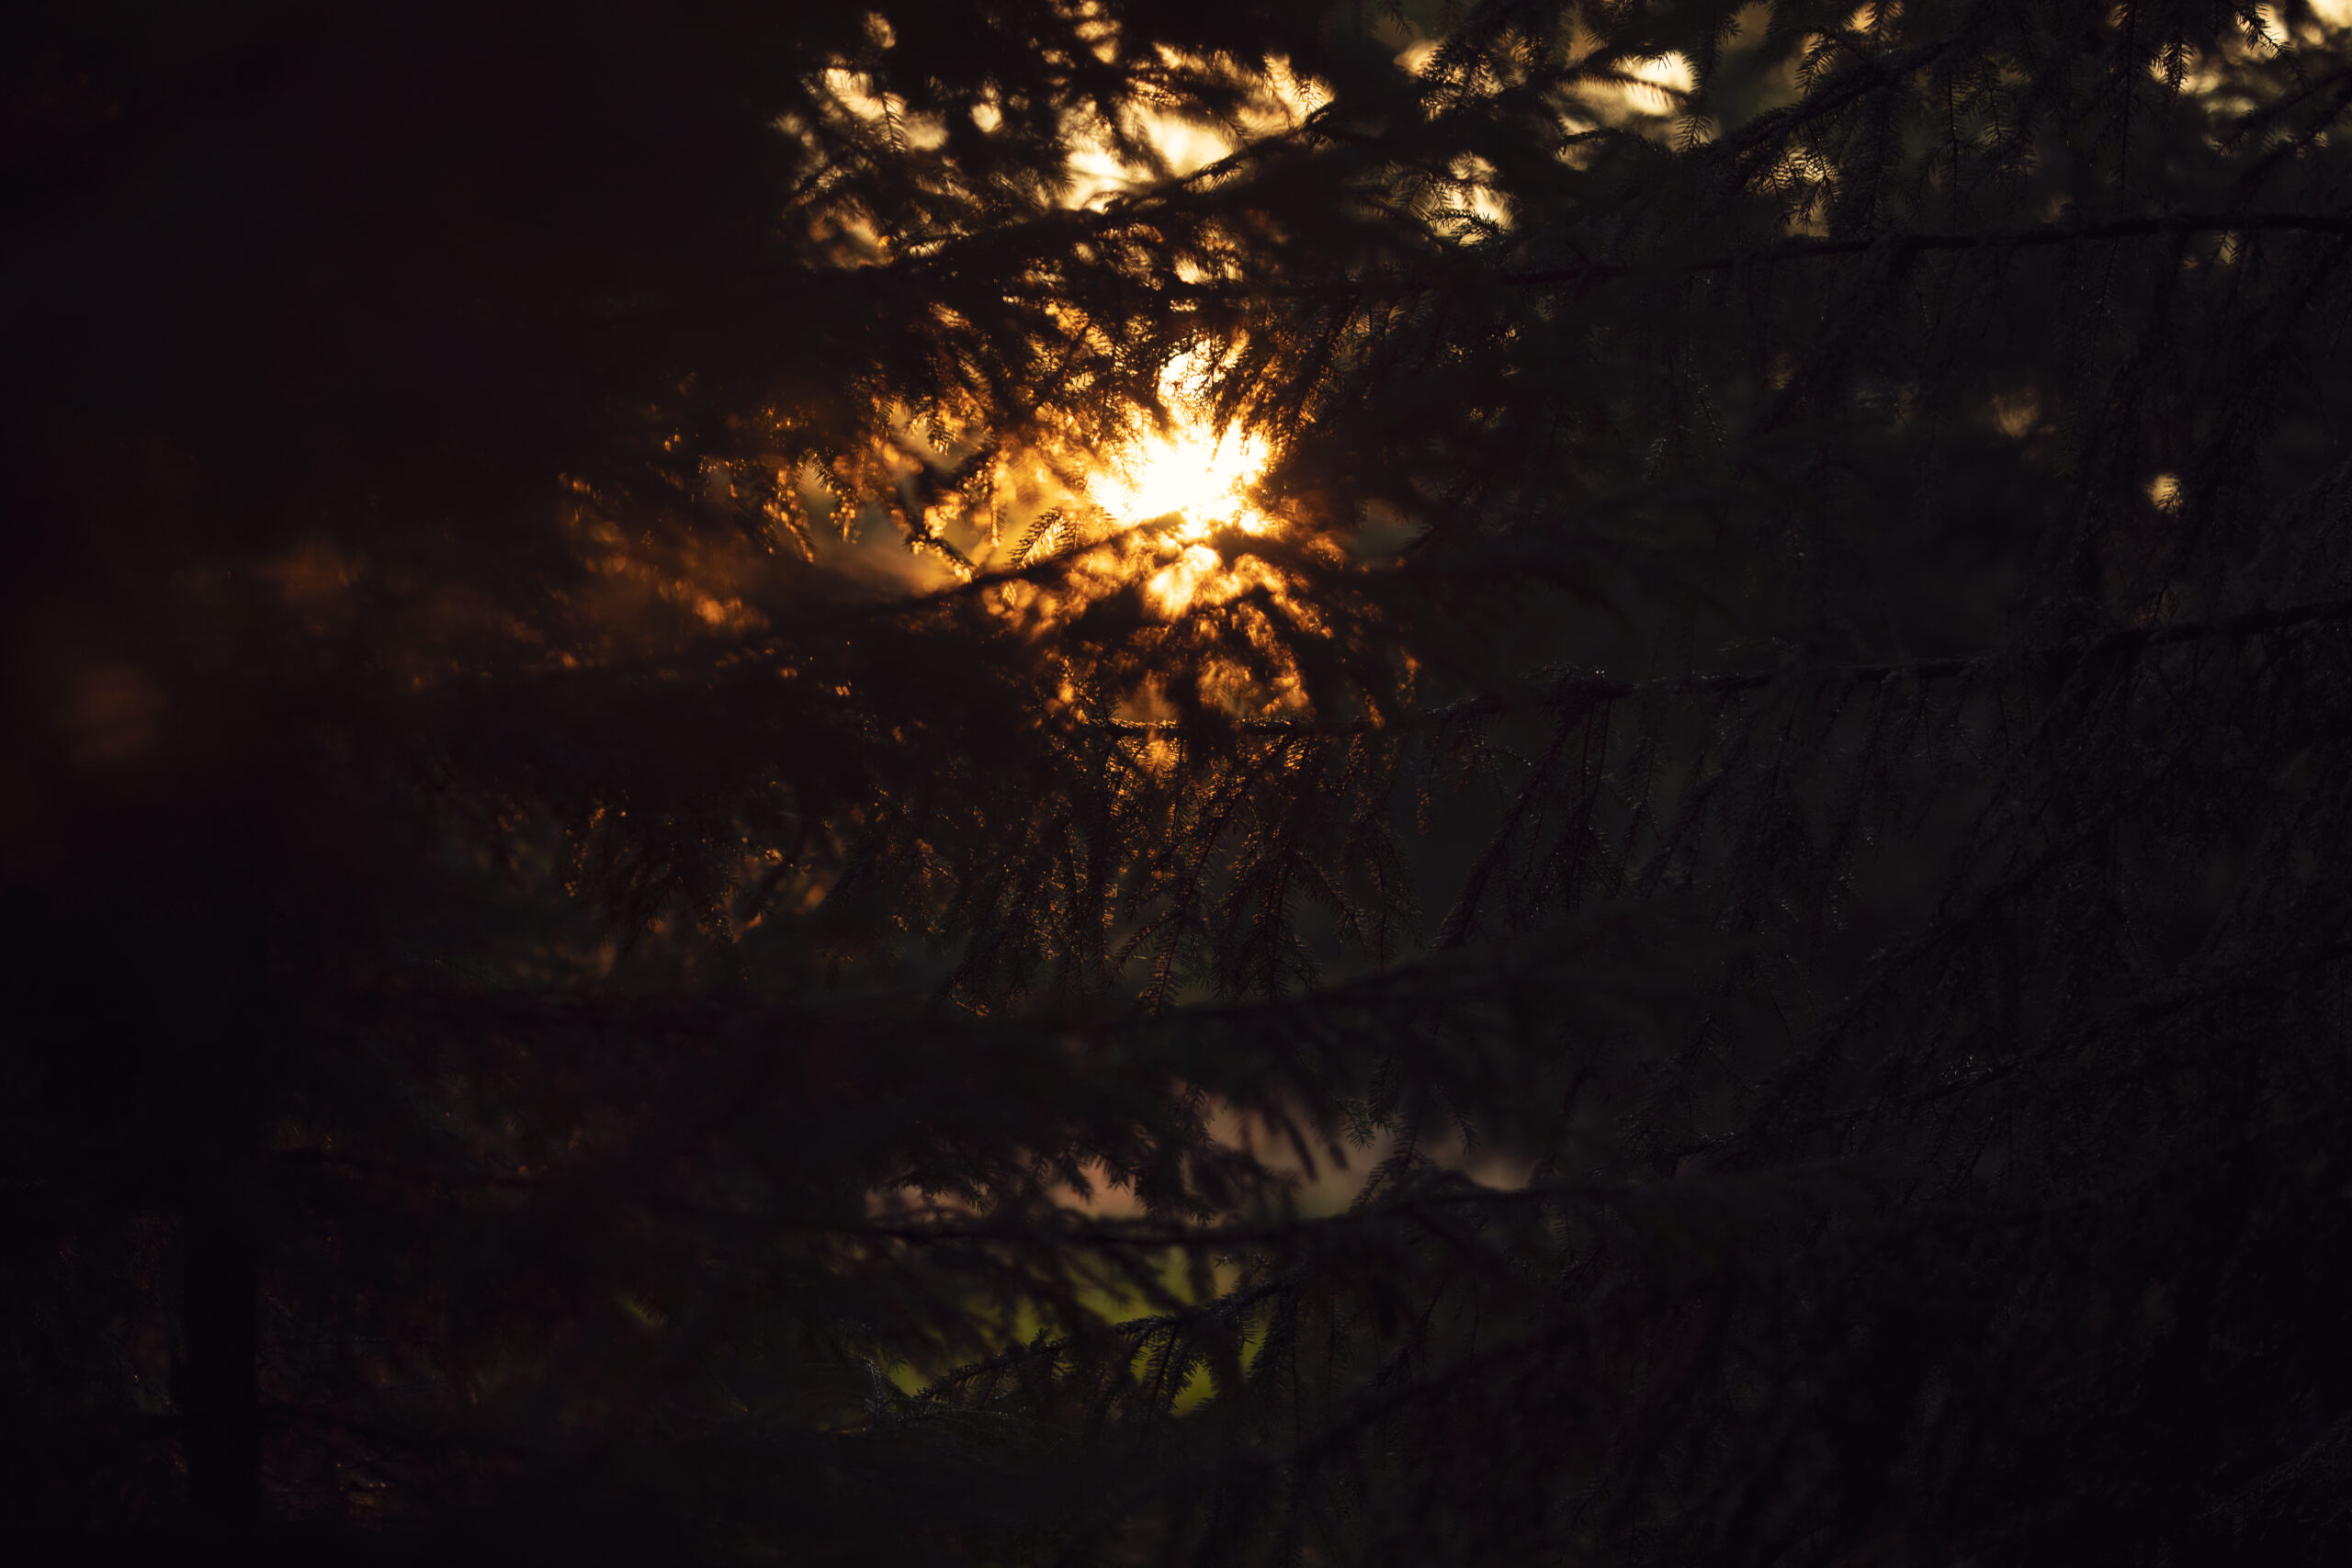 sunset in swedish forest